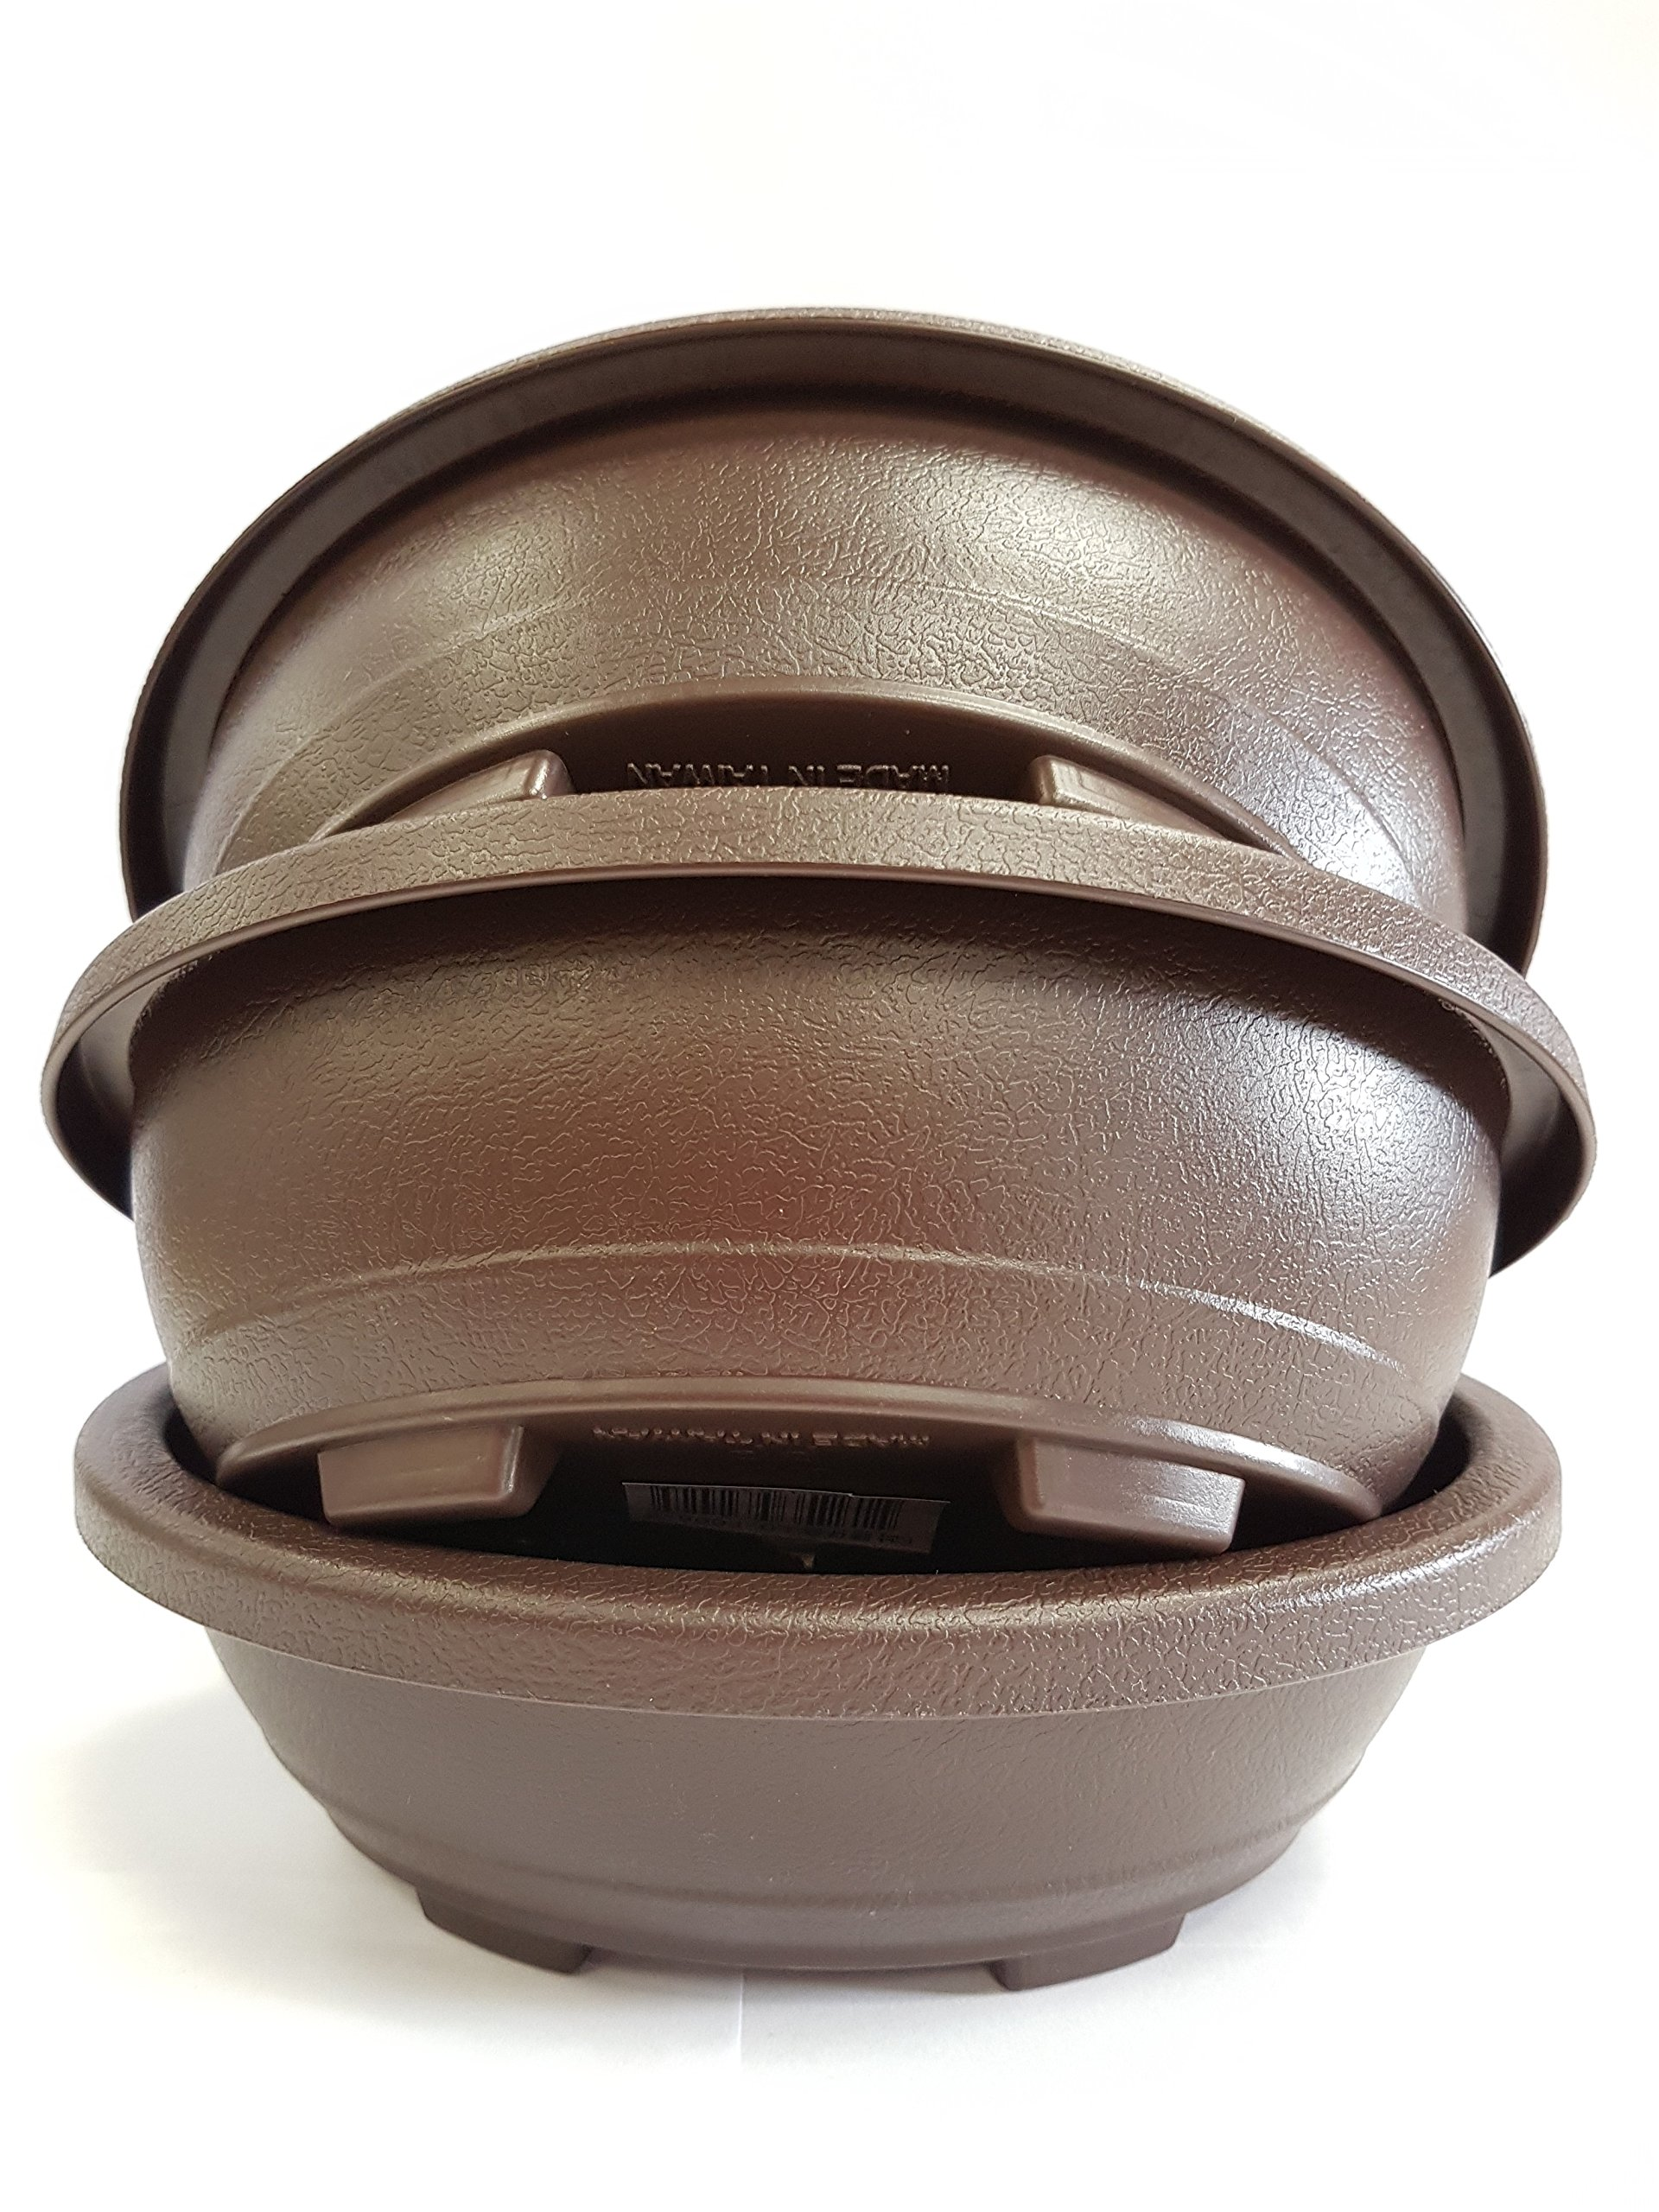 3 X Oval Plastic Bonsai Pots Buy Online In Faroe Islands At Faroe Desertcart Com Productid 59636558